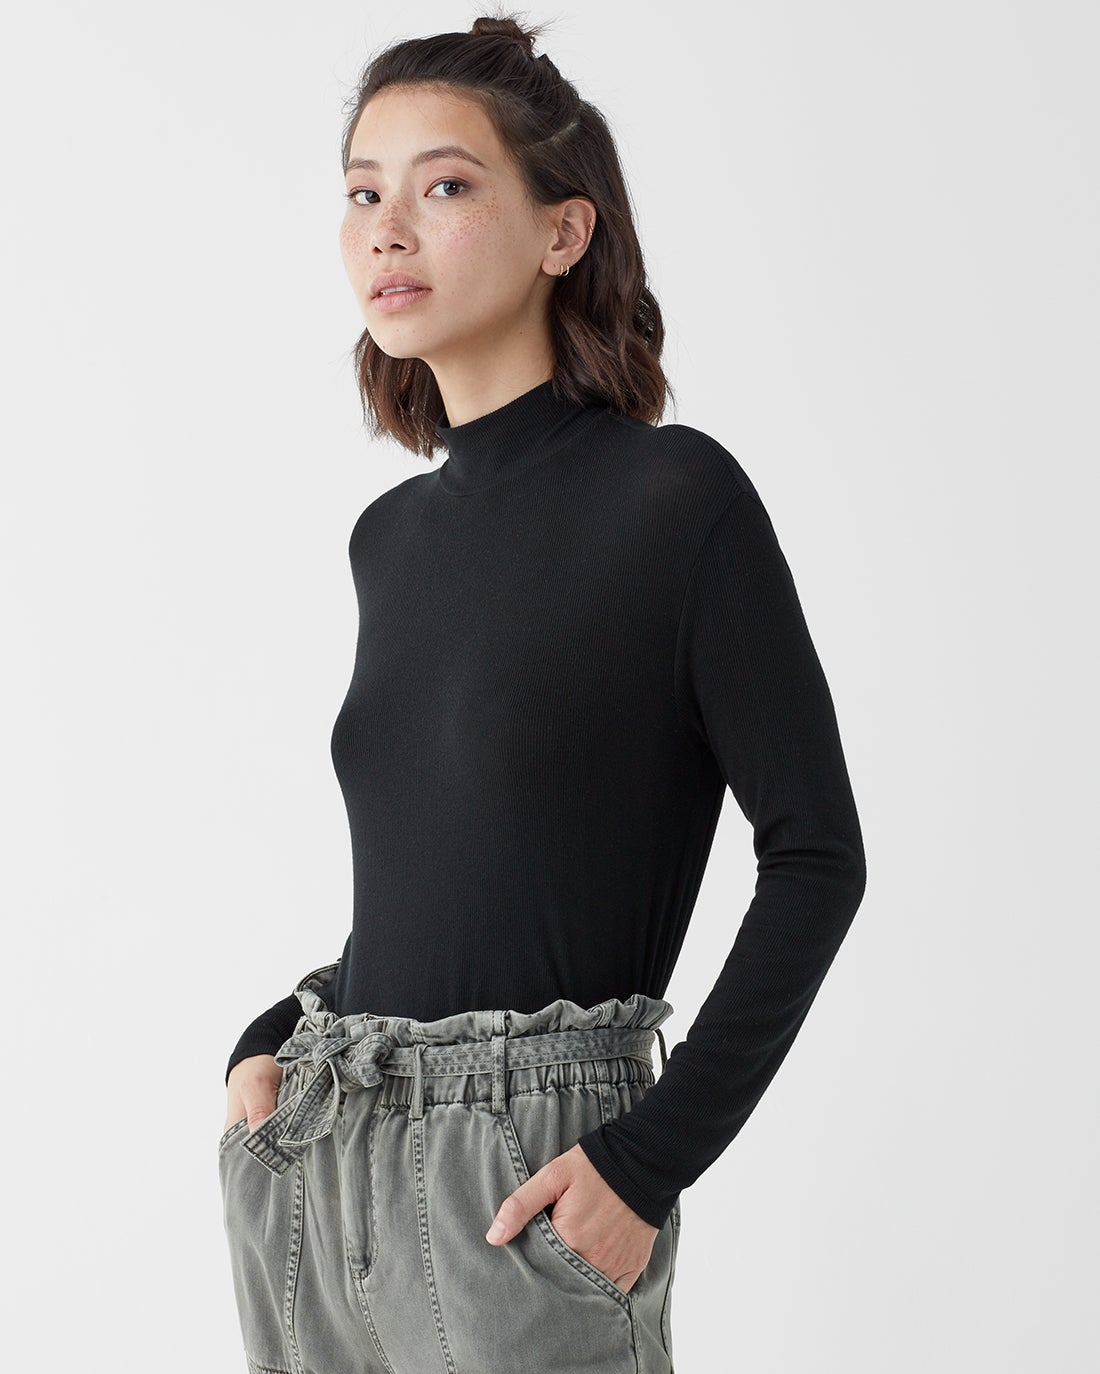 2x1 Rib Mock Neck Long Sleeve Shirt in Black